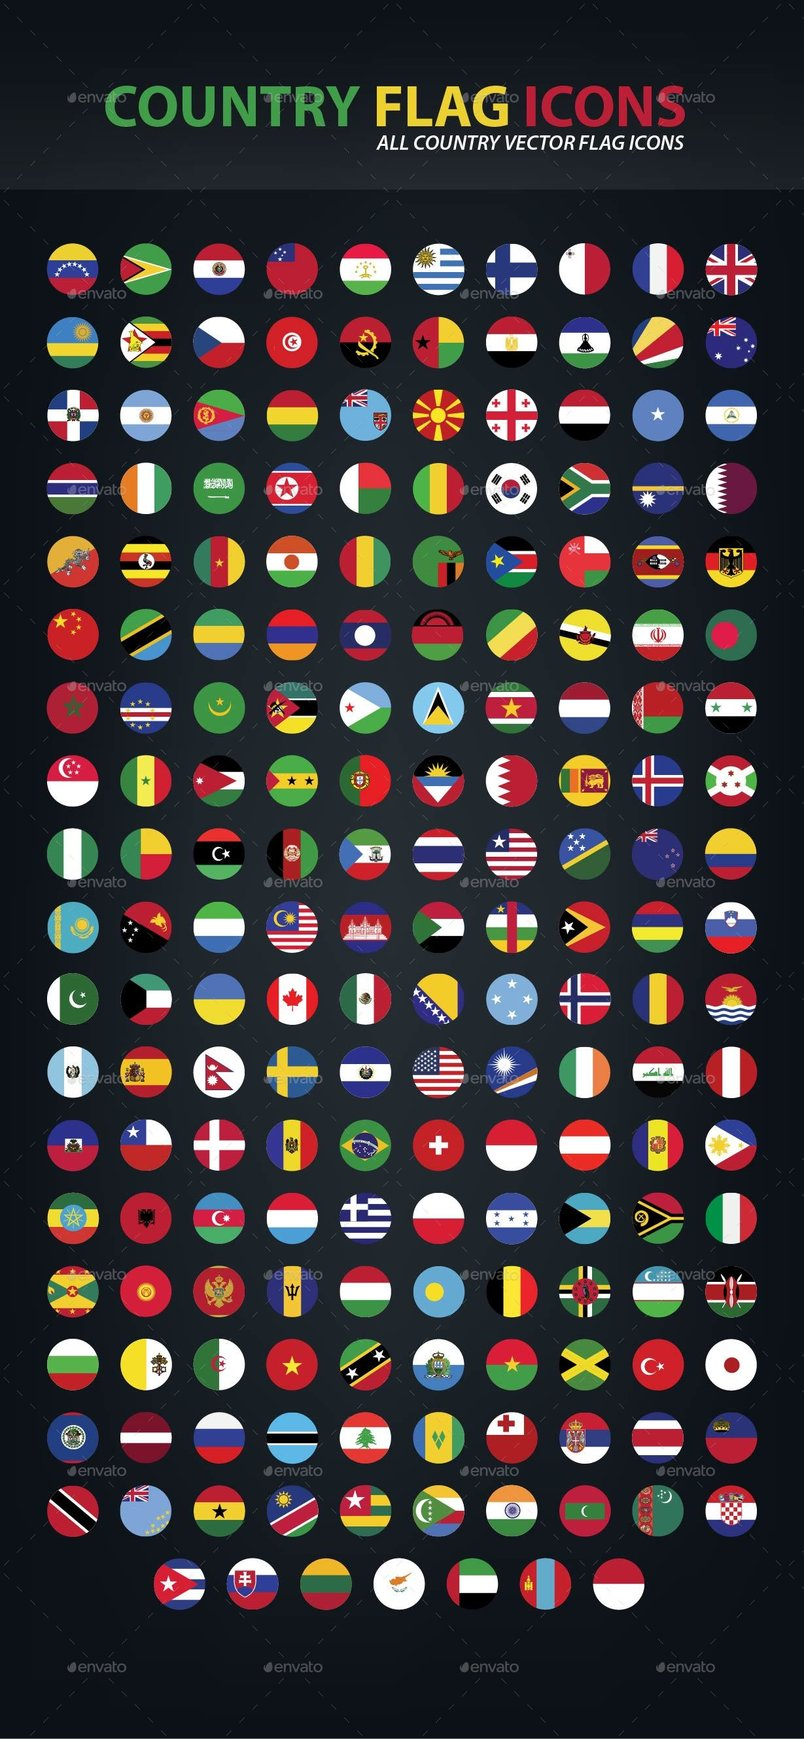 country-flag-icons-collection-rounded-rectangle-style-2